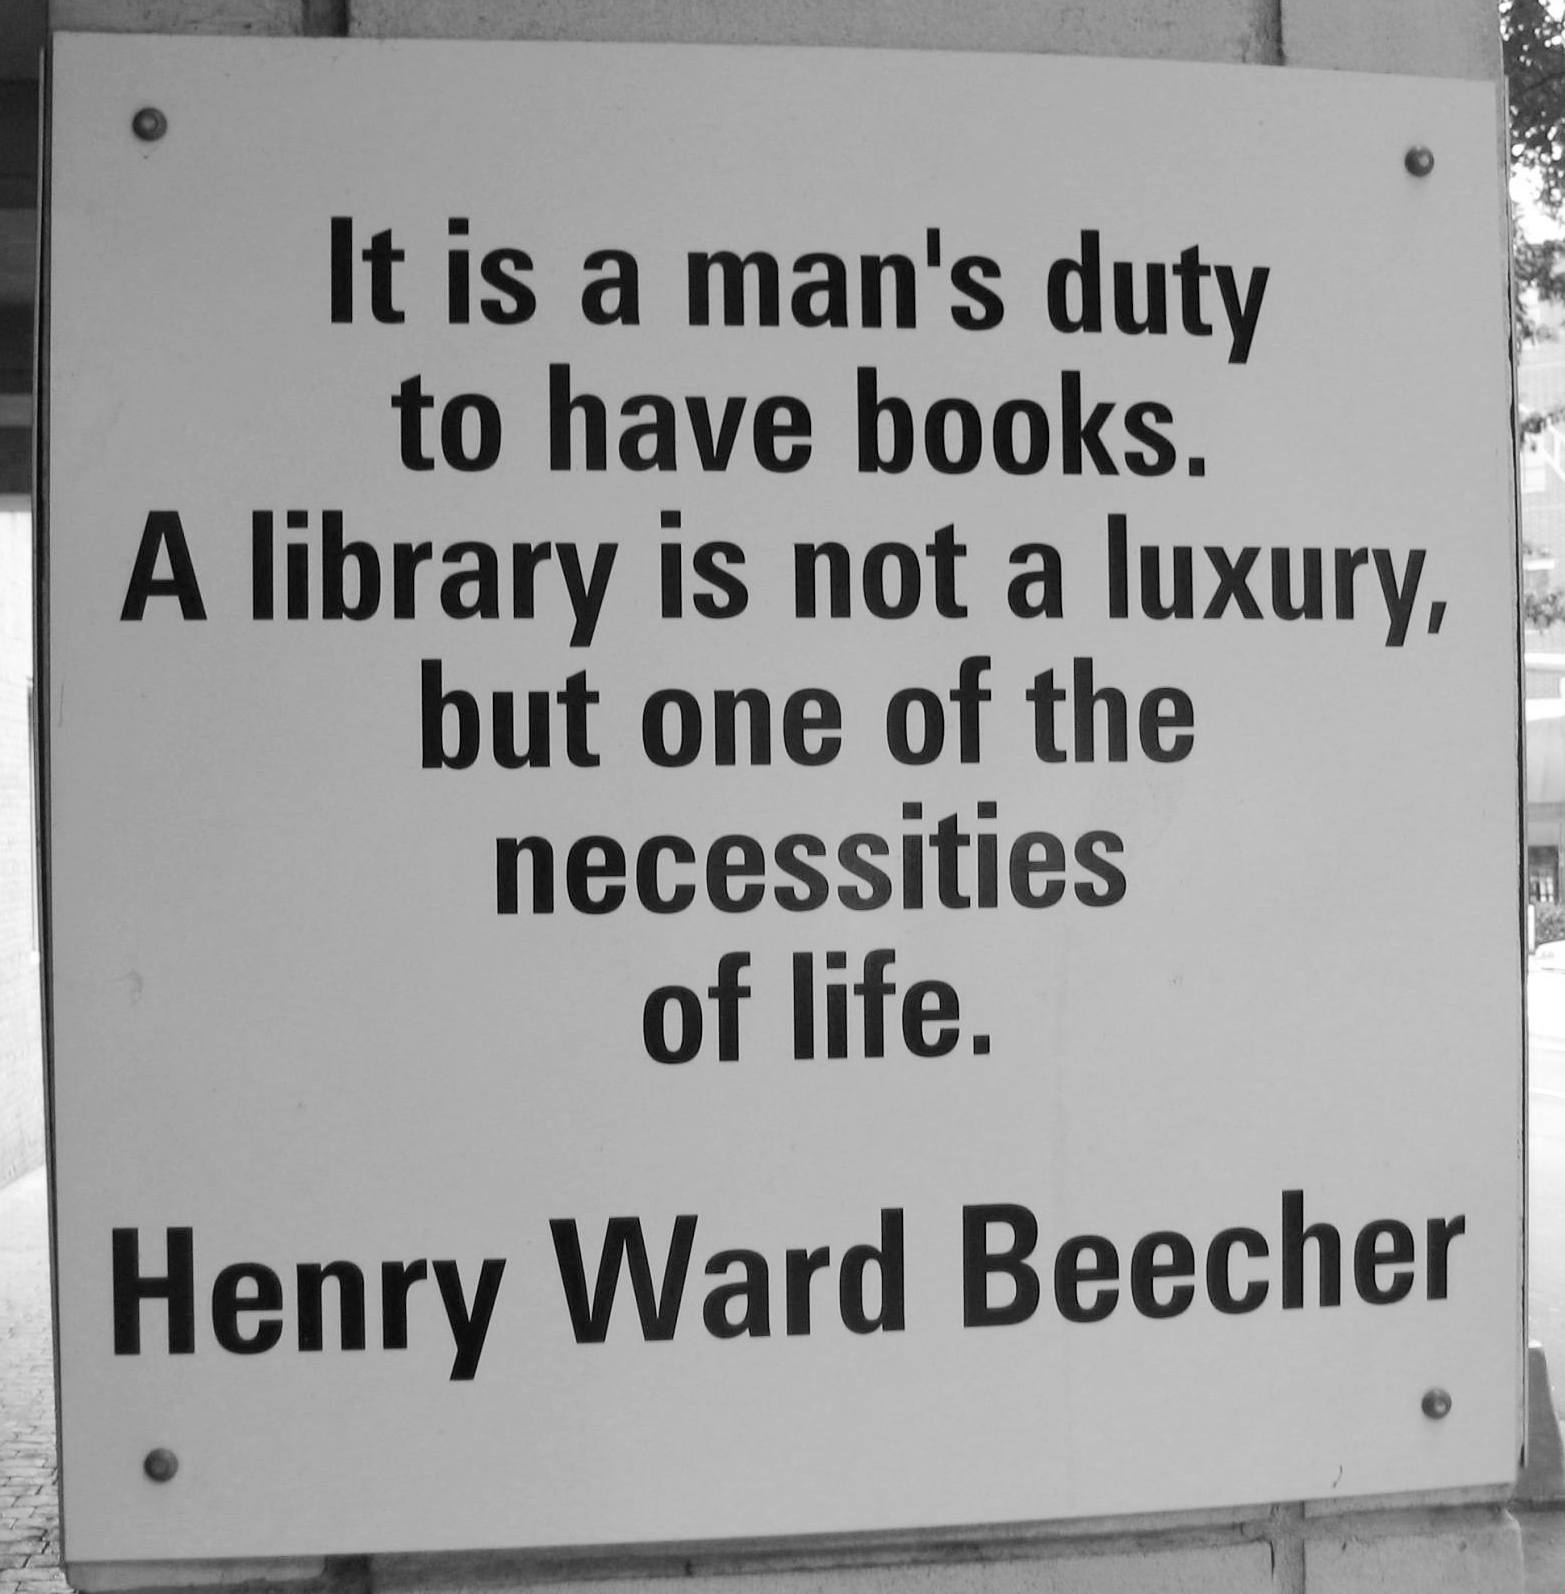 Library quote #3